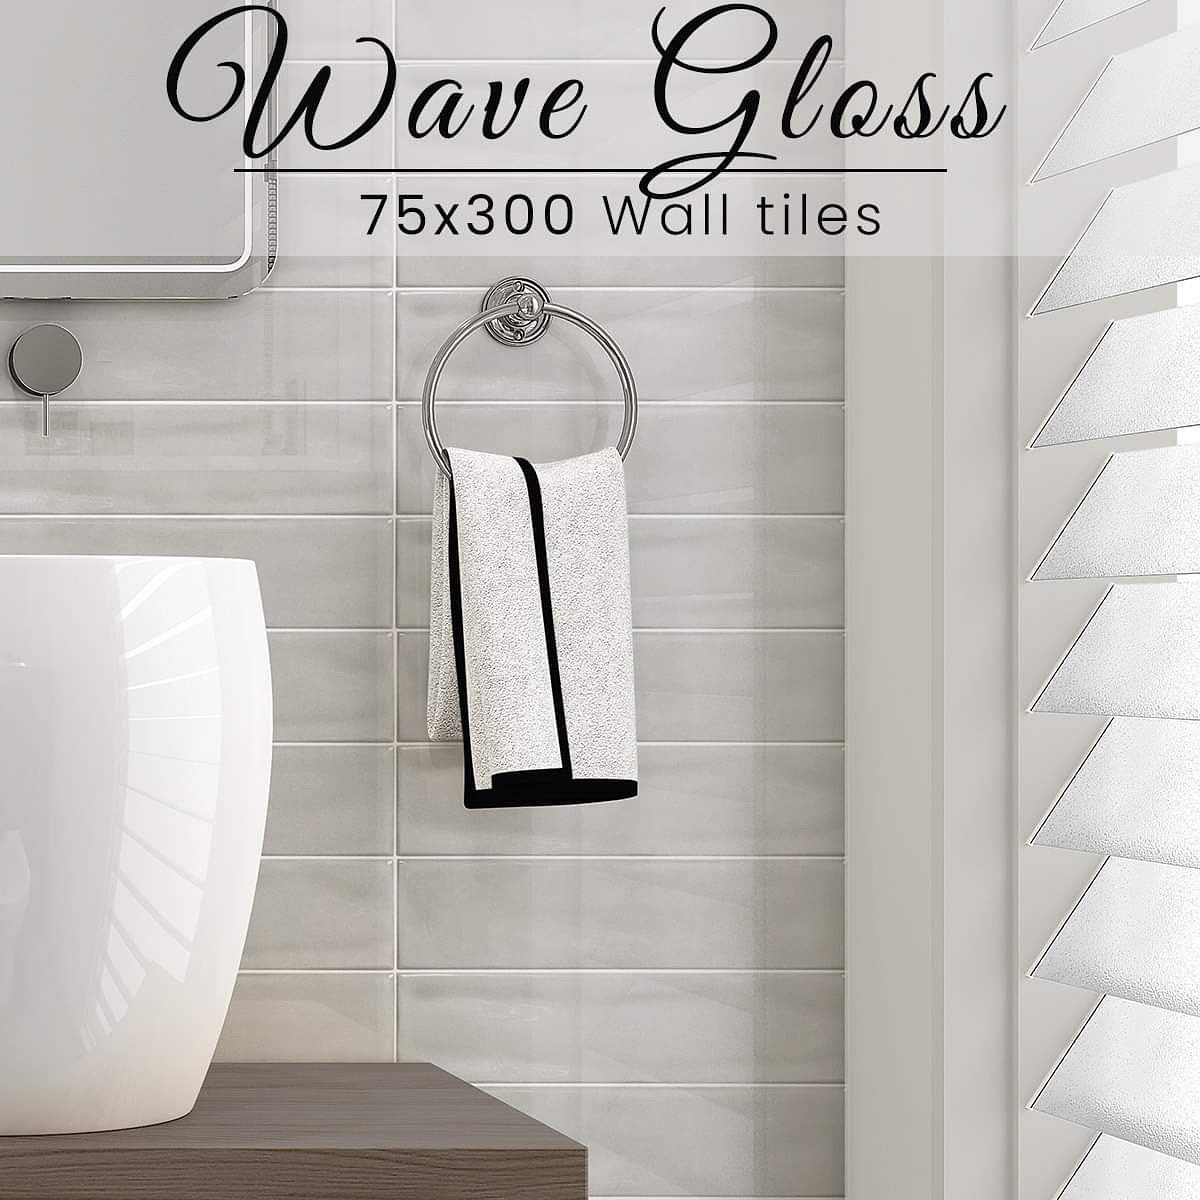 Wave Gloss Subway tiles